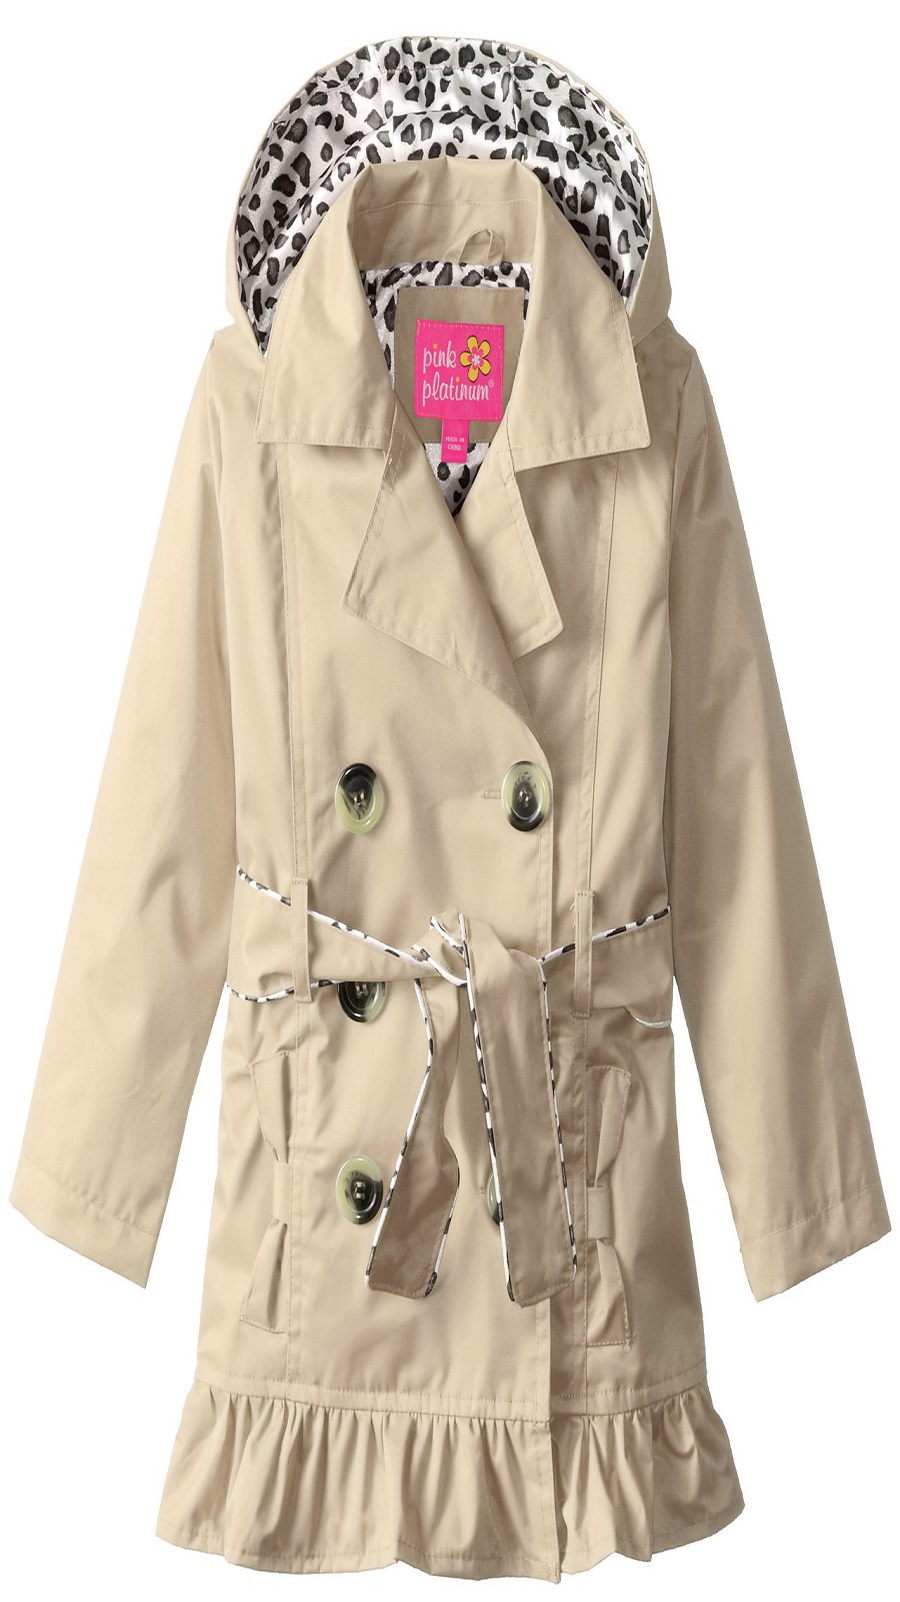 Girls' Raincoats. Showing 48 of results that match your query. Search Product Result. Product - Girls' Embroidered Cotton Anorak Jacket. Product Image. Price Product - Coxeer Girls Boys Kids Raincoat Portable Rain Poncho with Hood & Long Sleeves for .